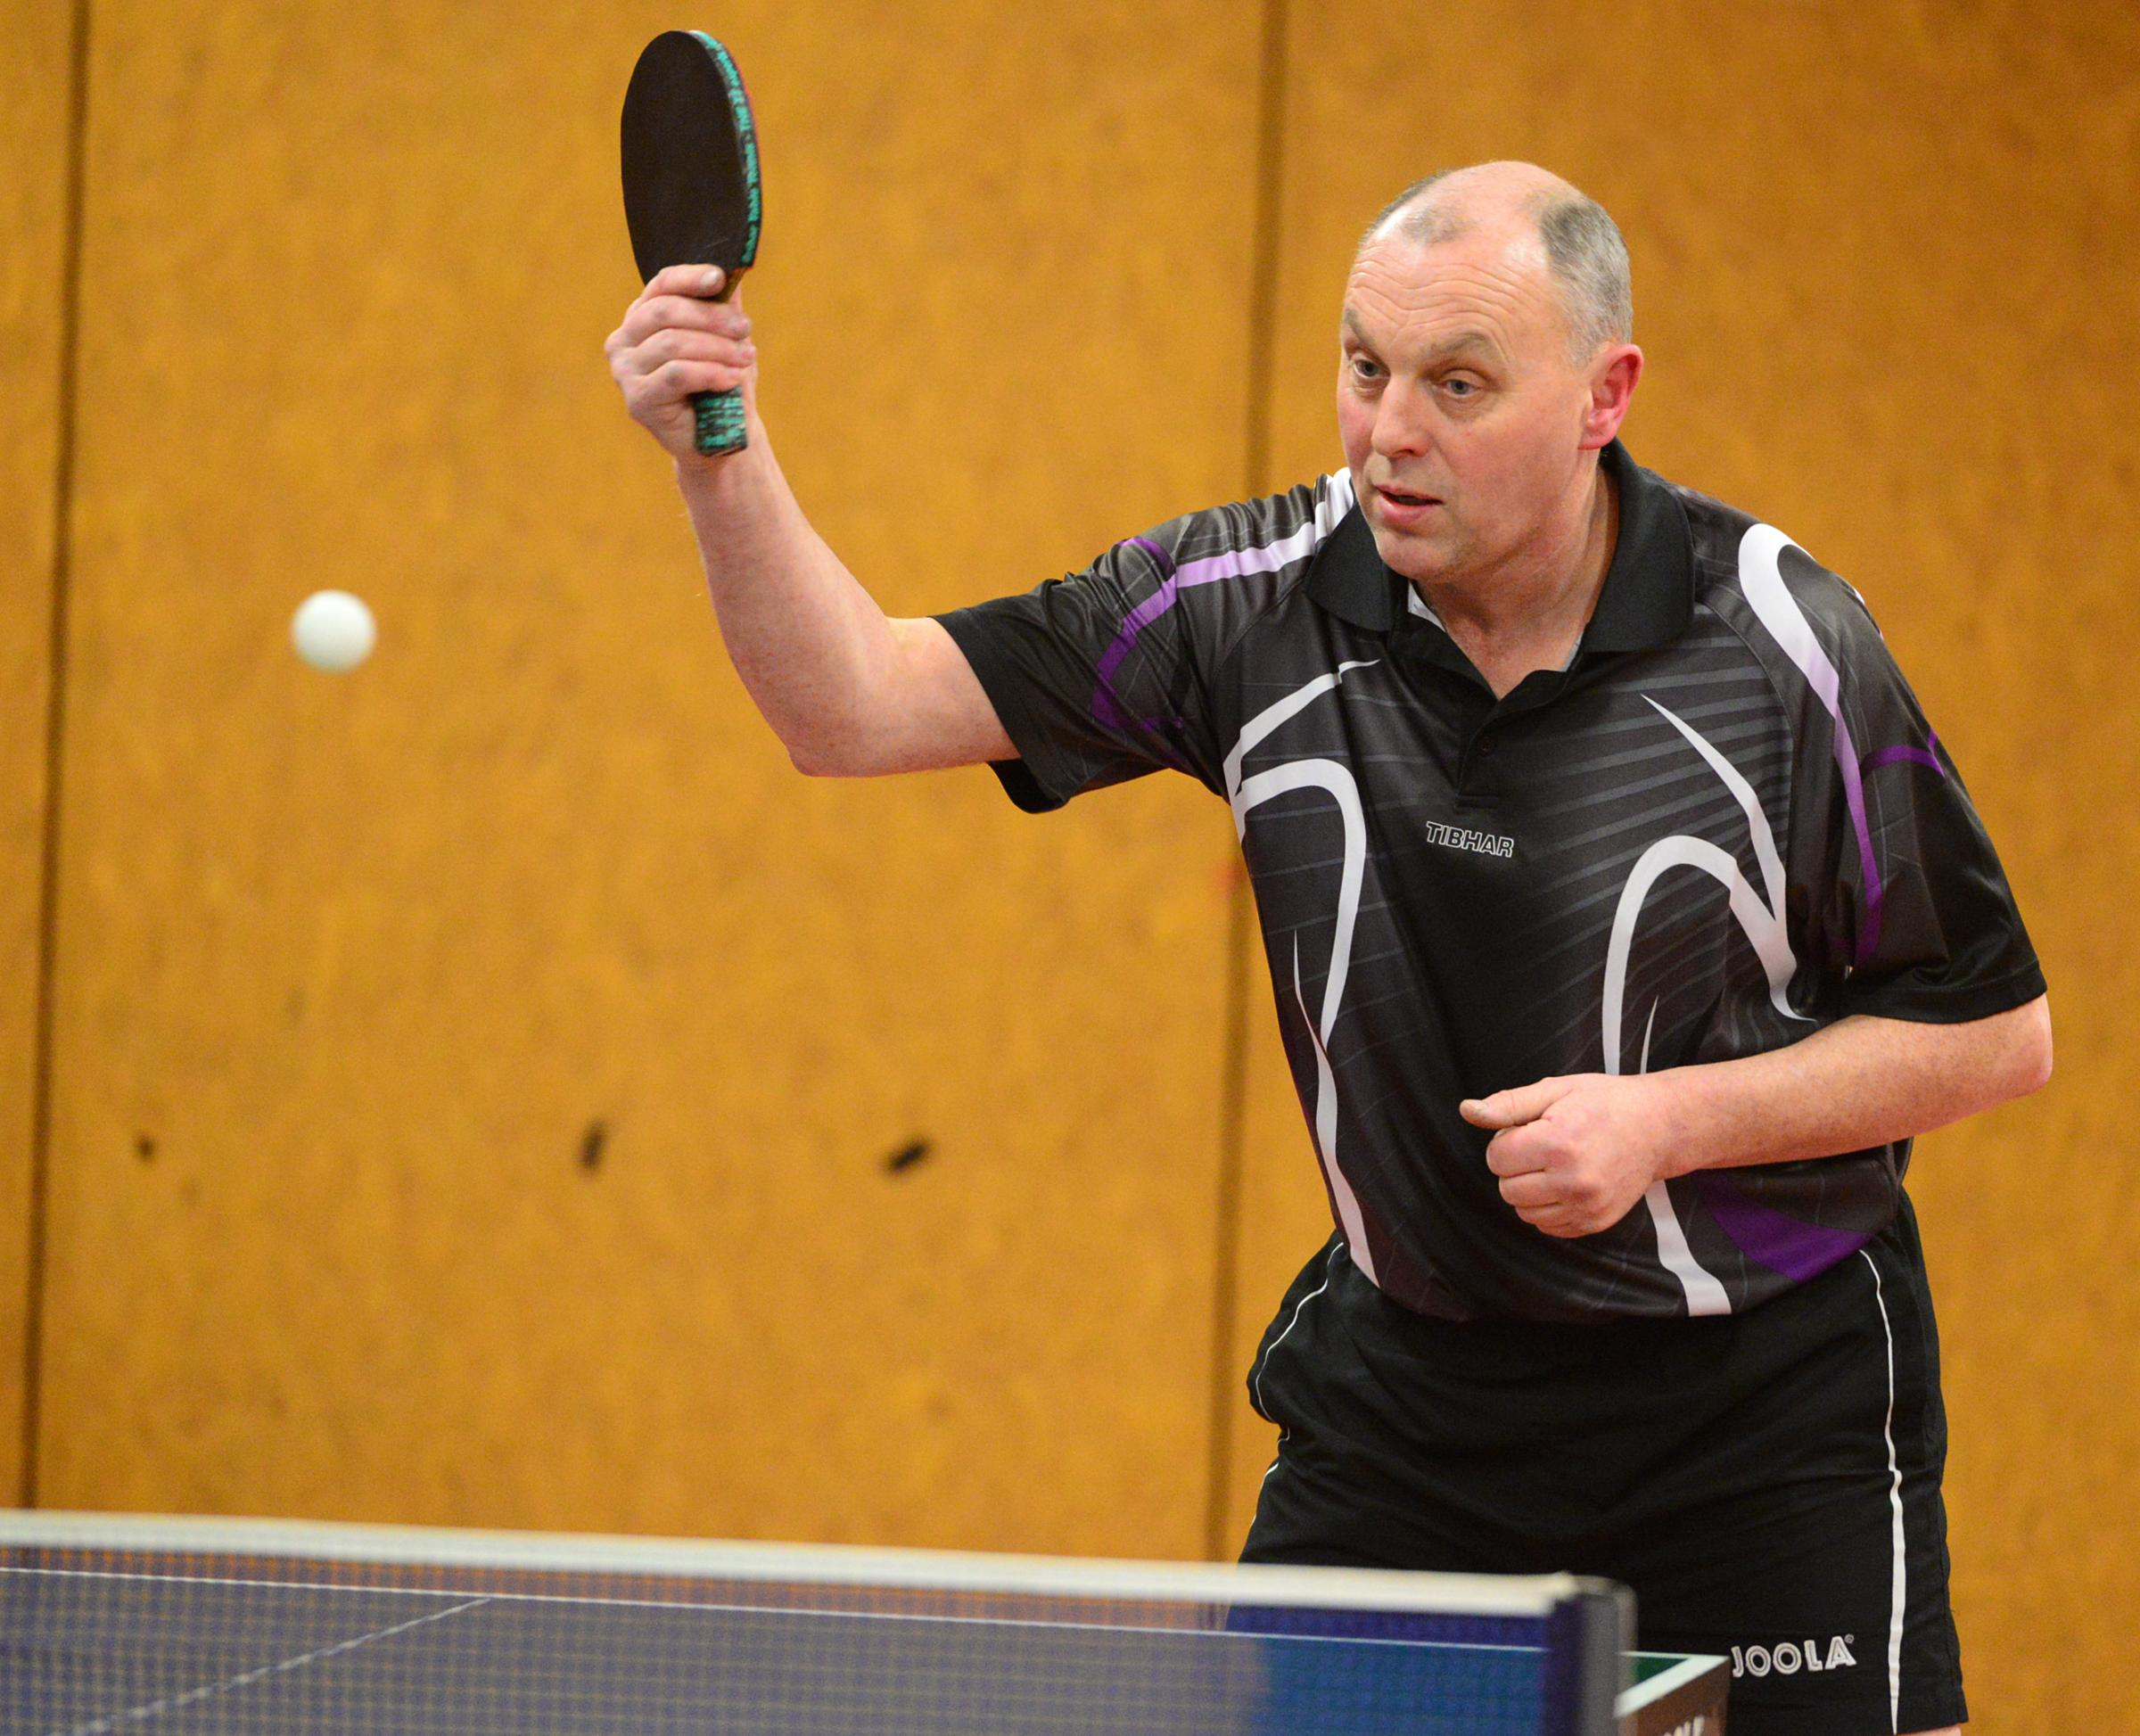 Ryde A player Lee Orton, who boasts a 100 per cent win record in Division 1 of the Isle of Wight Table Tennis Association League.  FILE